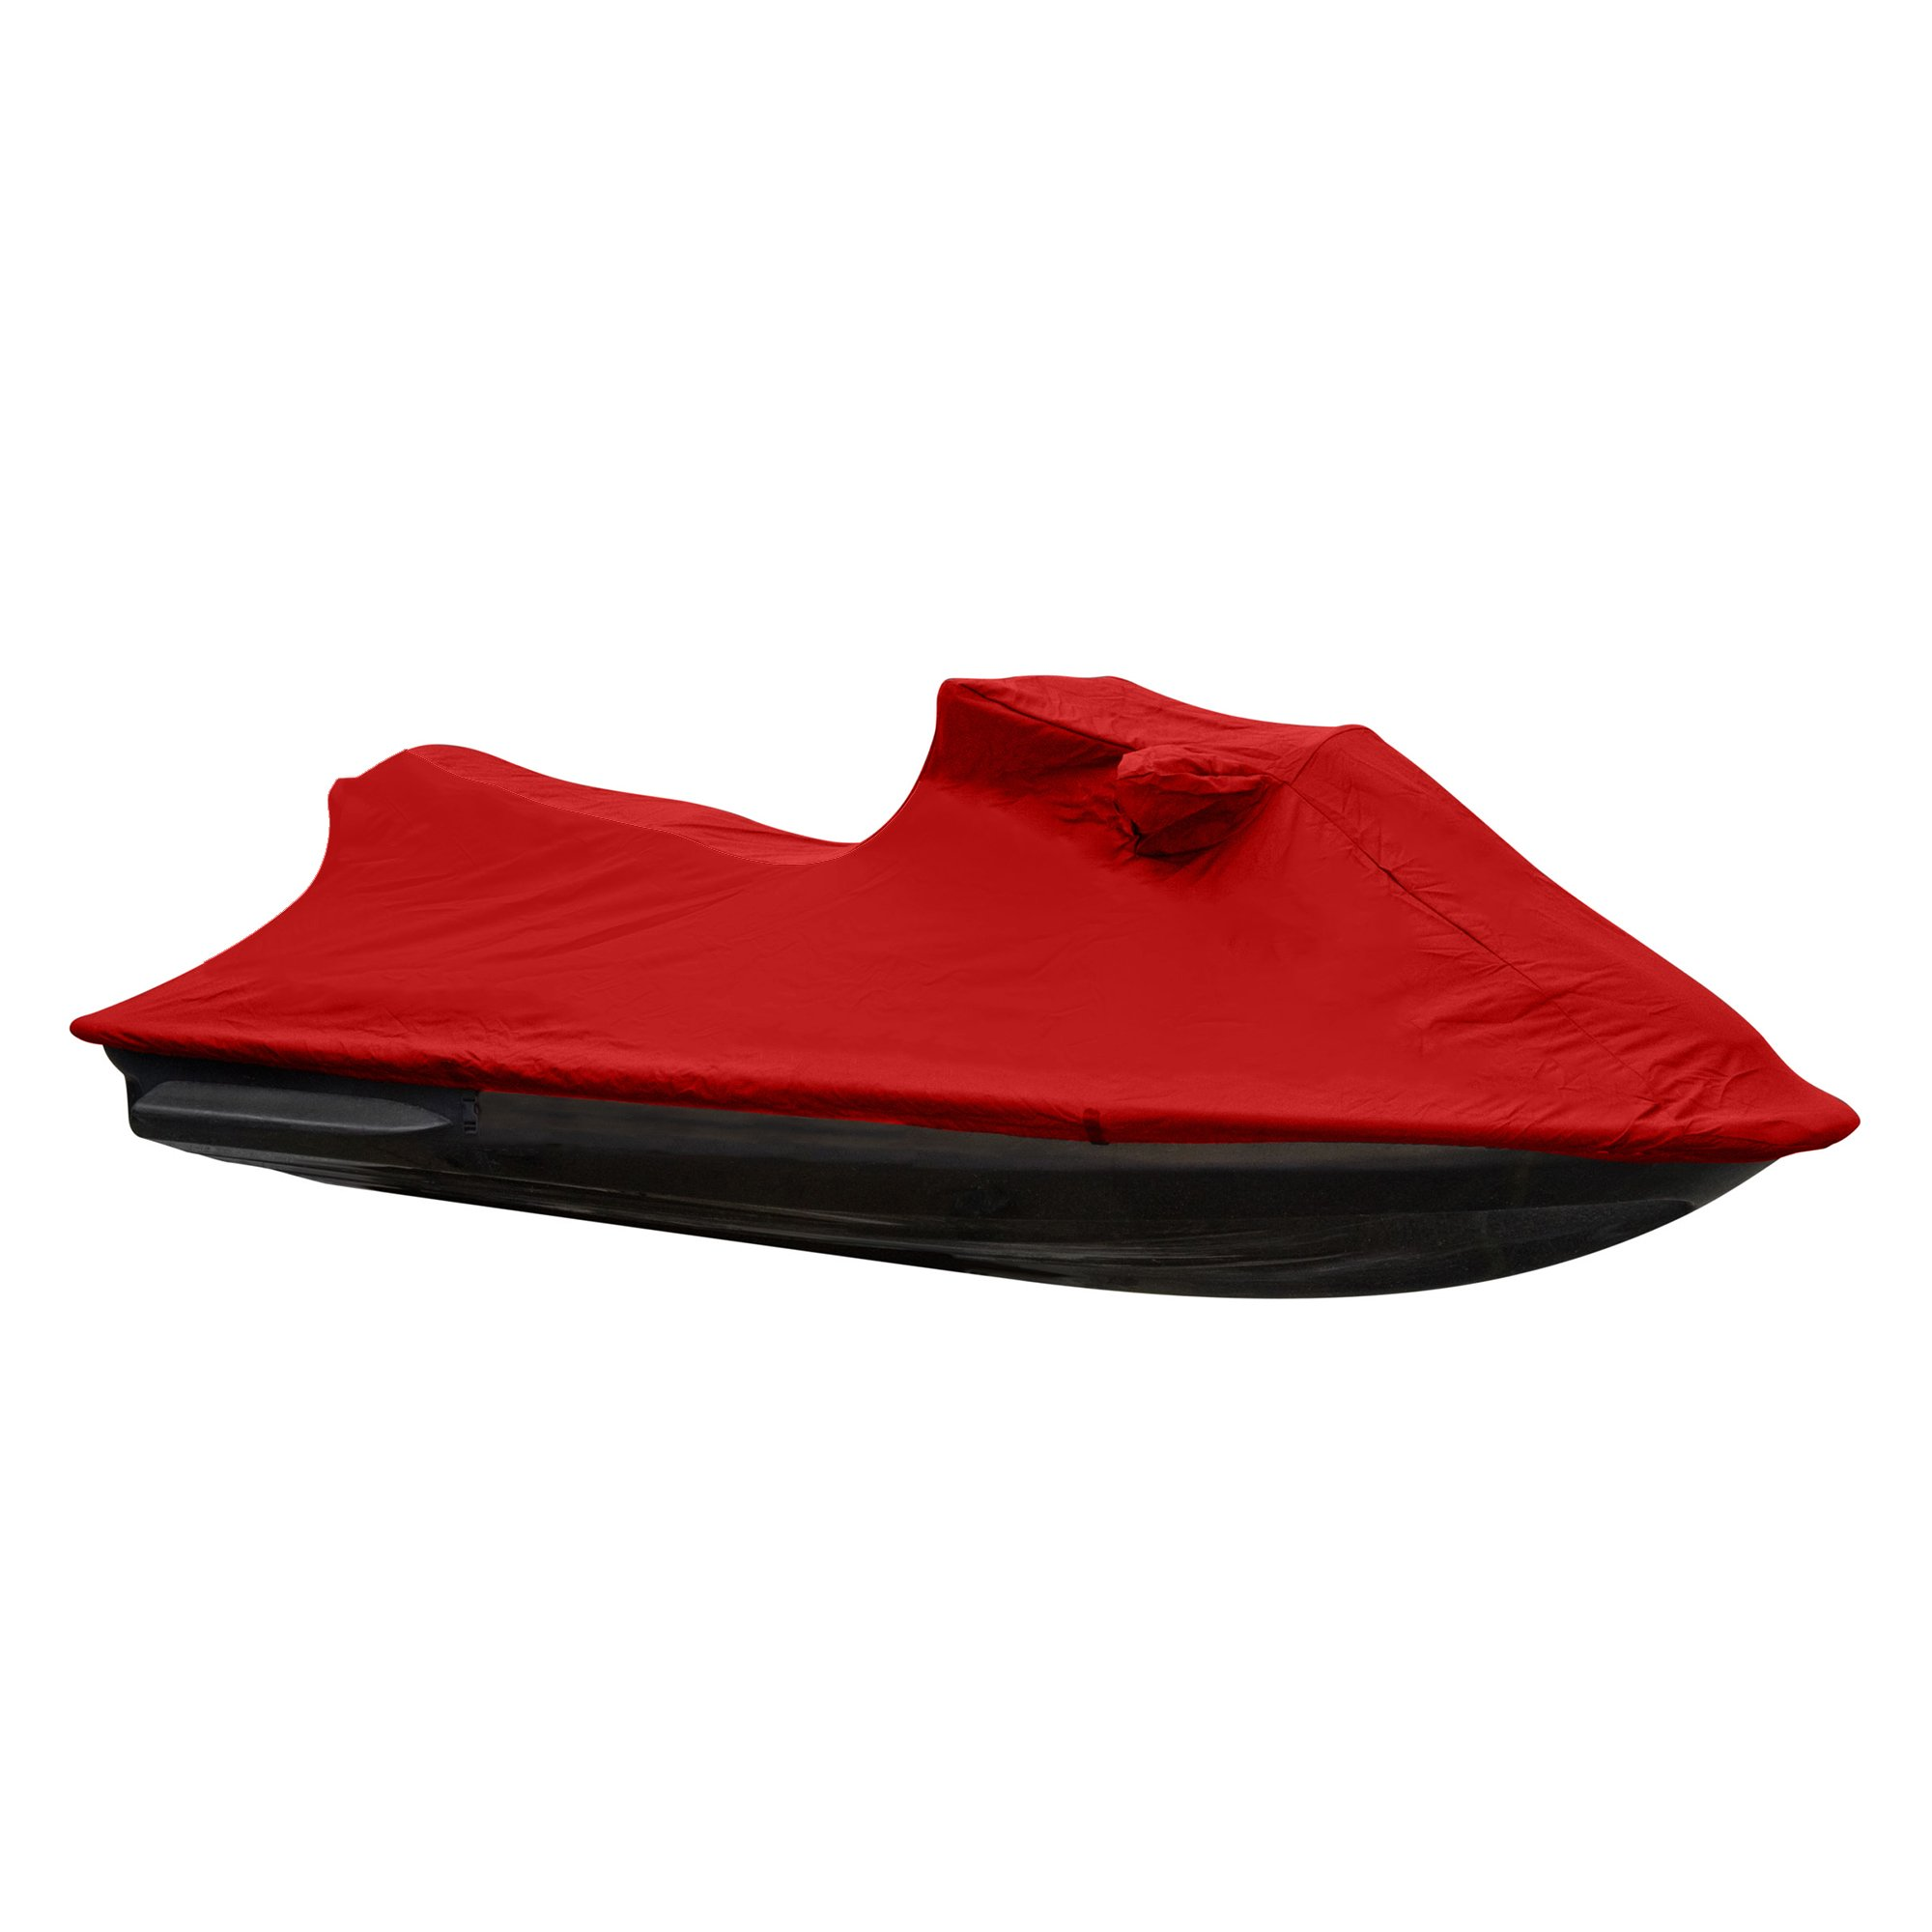 Westland Exact Fit PWC Cover for Tiger Shark